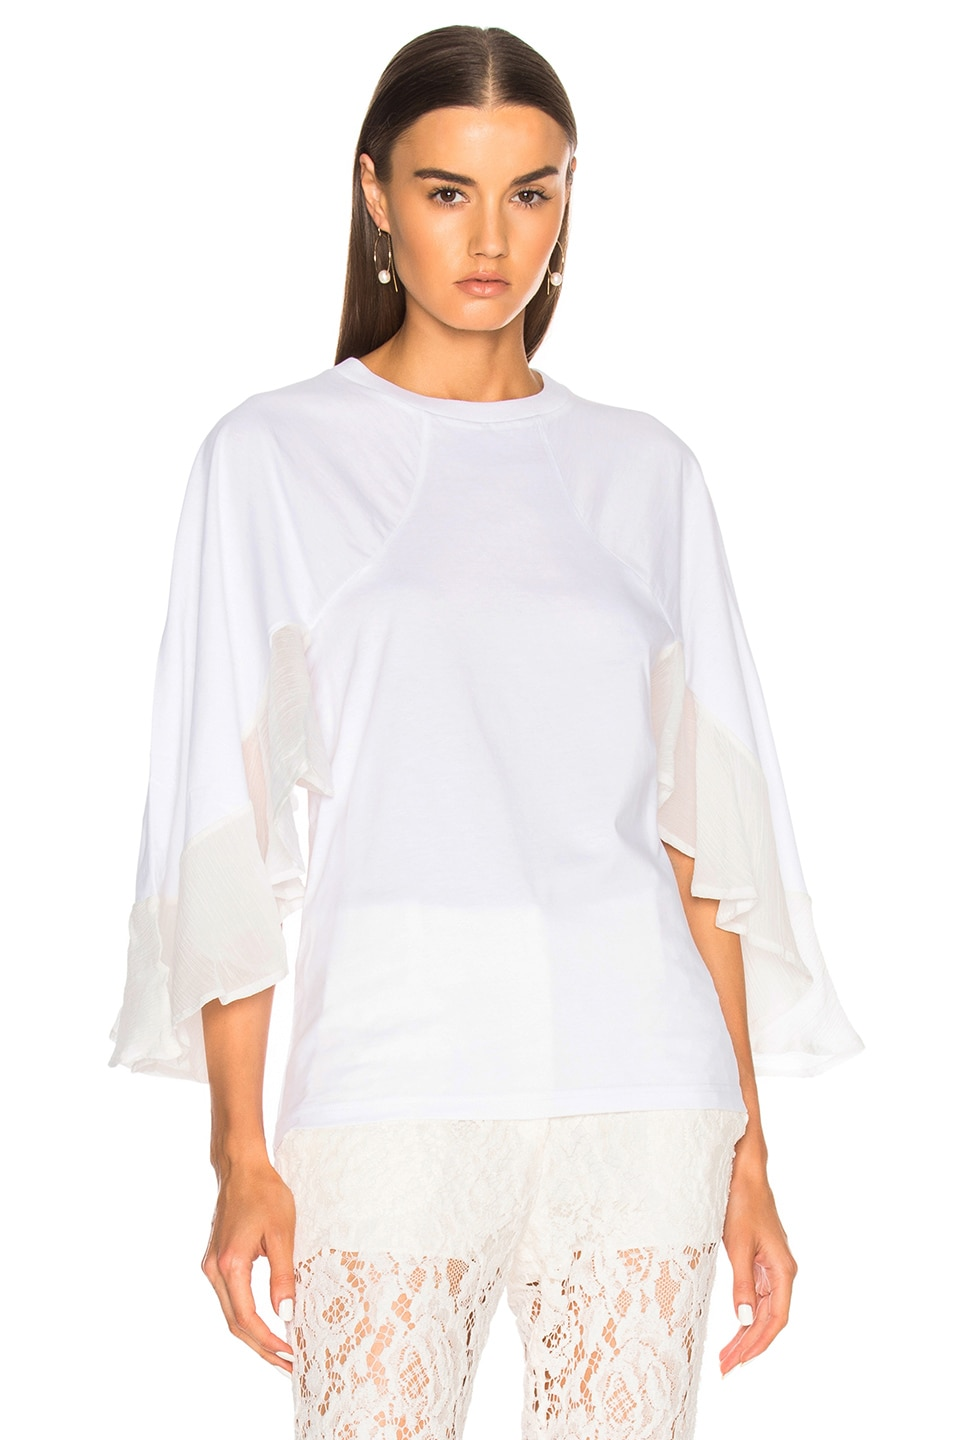 Chloe Jersey Blouse with Crepon Sleeves in White